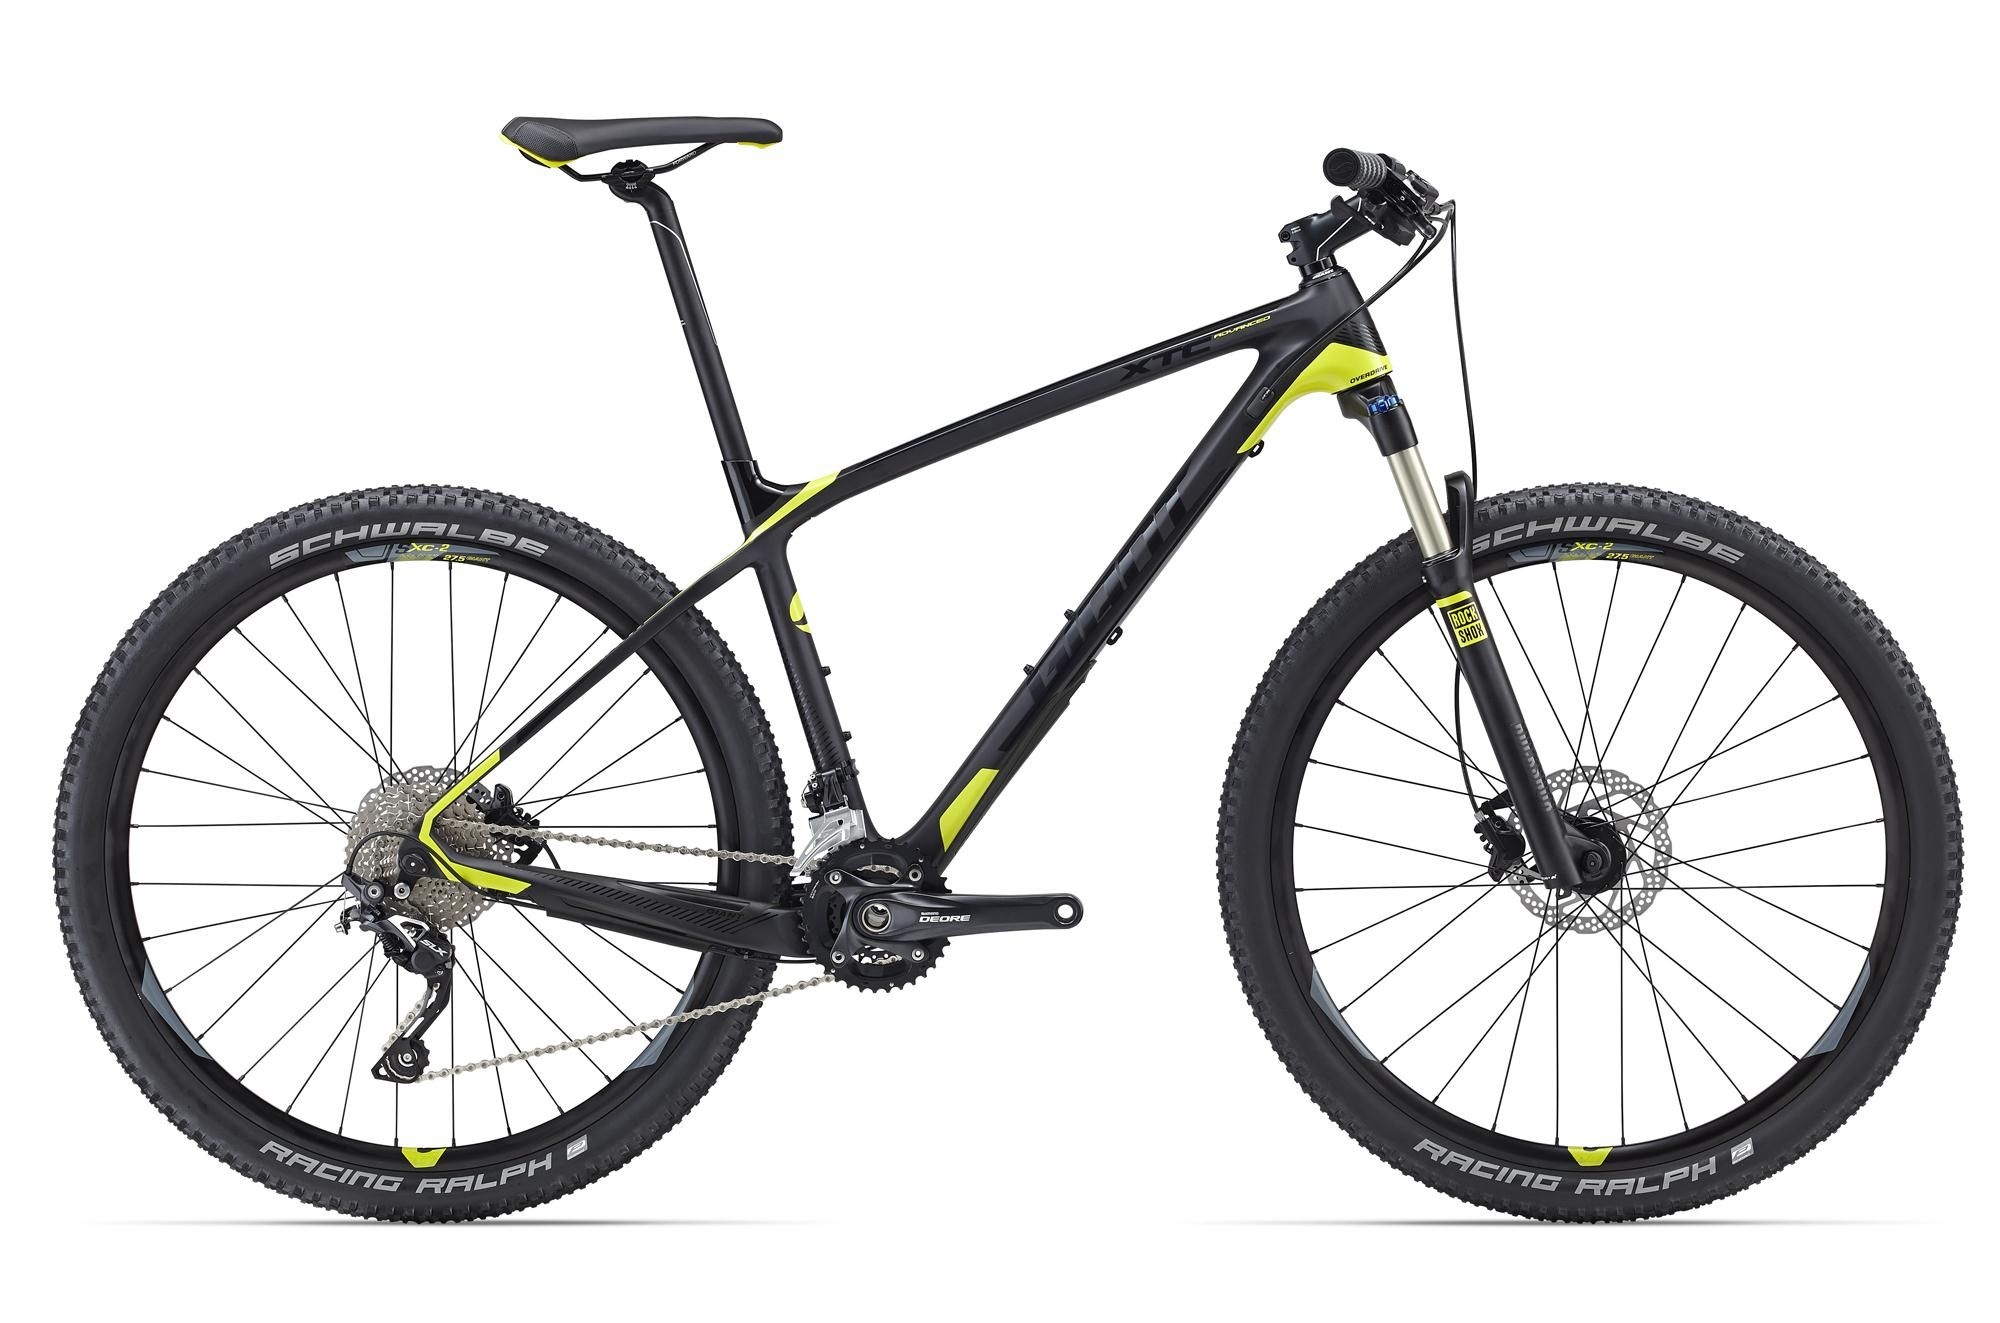 Велосипед Giant XtC Advanced 27.5 3 2016 велосипед giant trinity advanced pro 1 2016